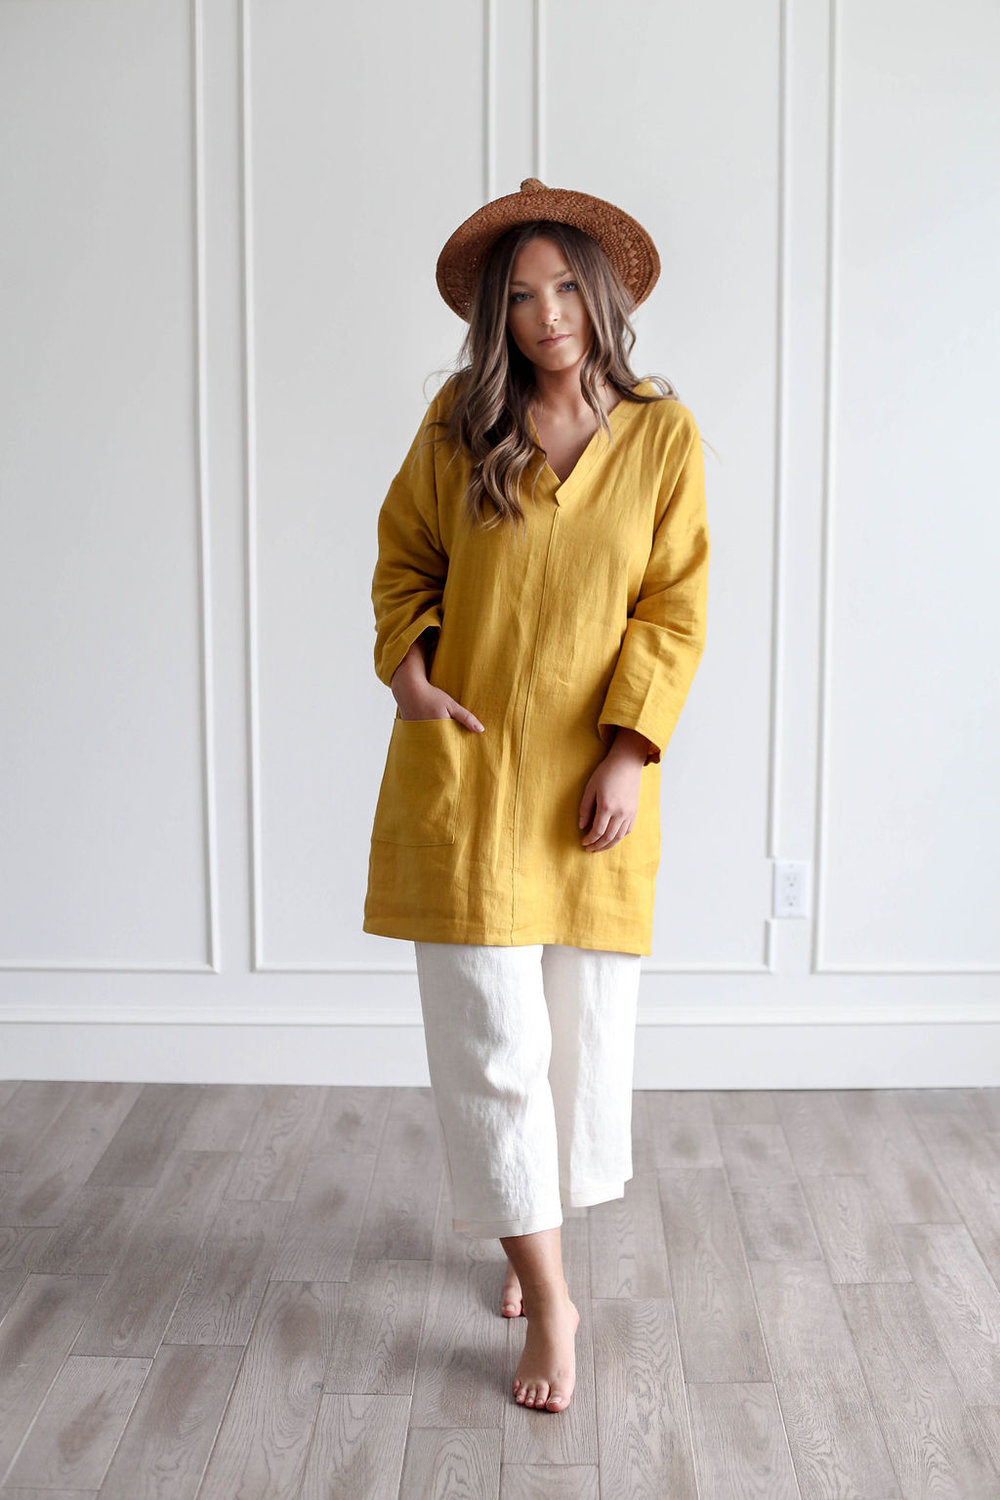 Nomi Designs | Linen Tunic in Cheddar over linen pants.jpg